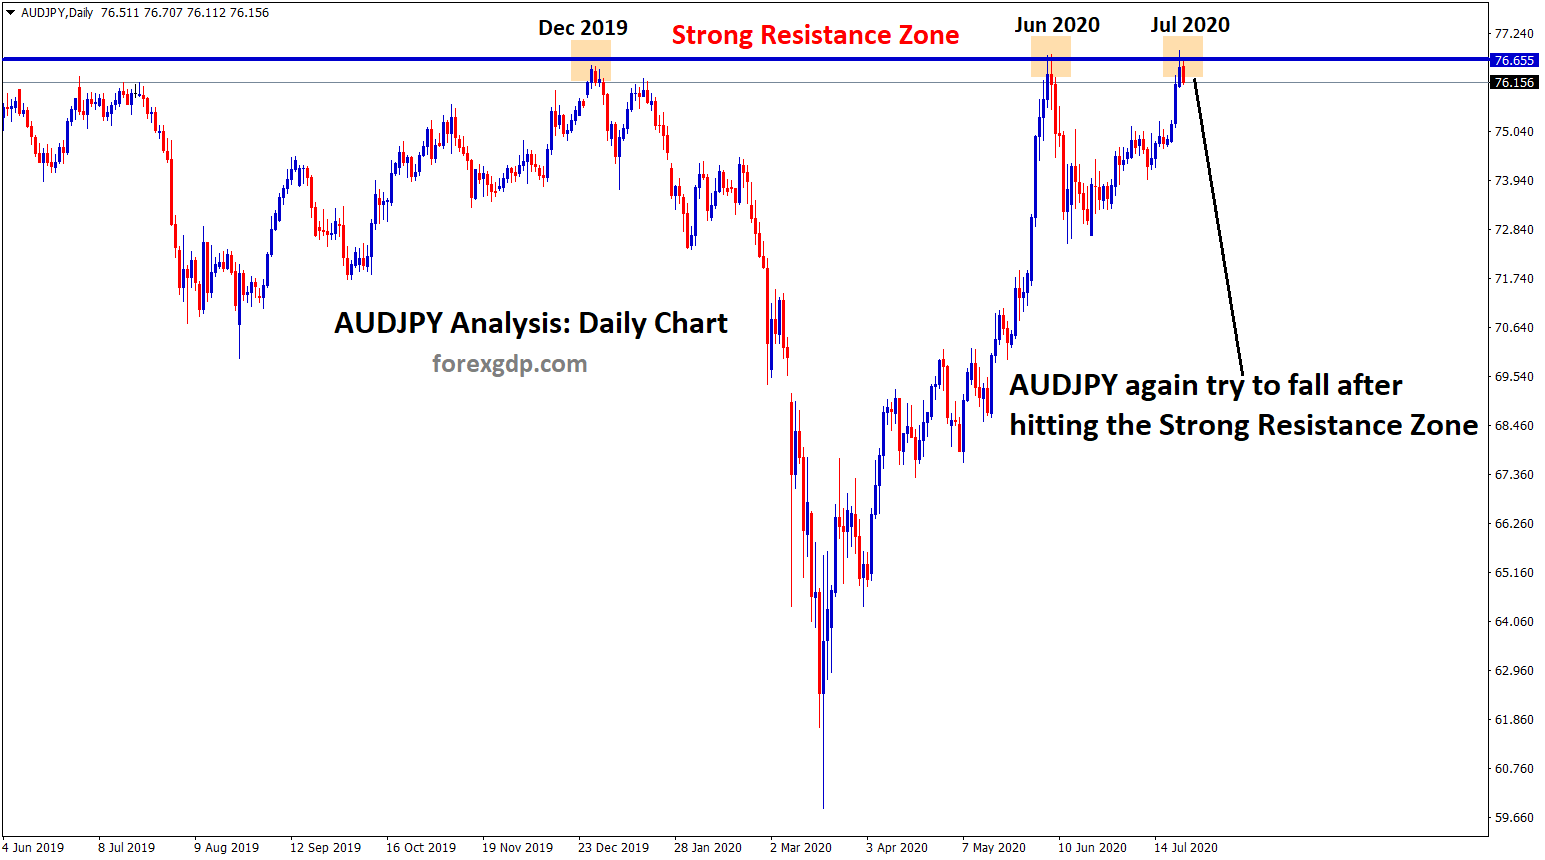 AUDJPY fails to break the Strong resistance zone